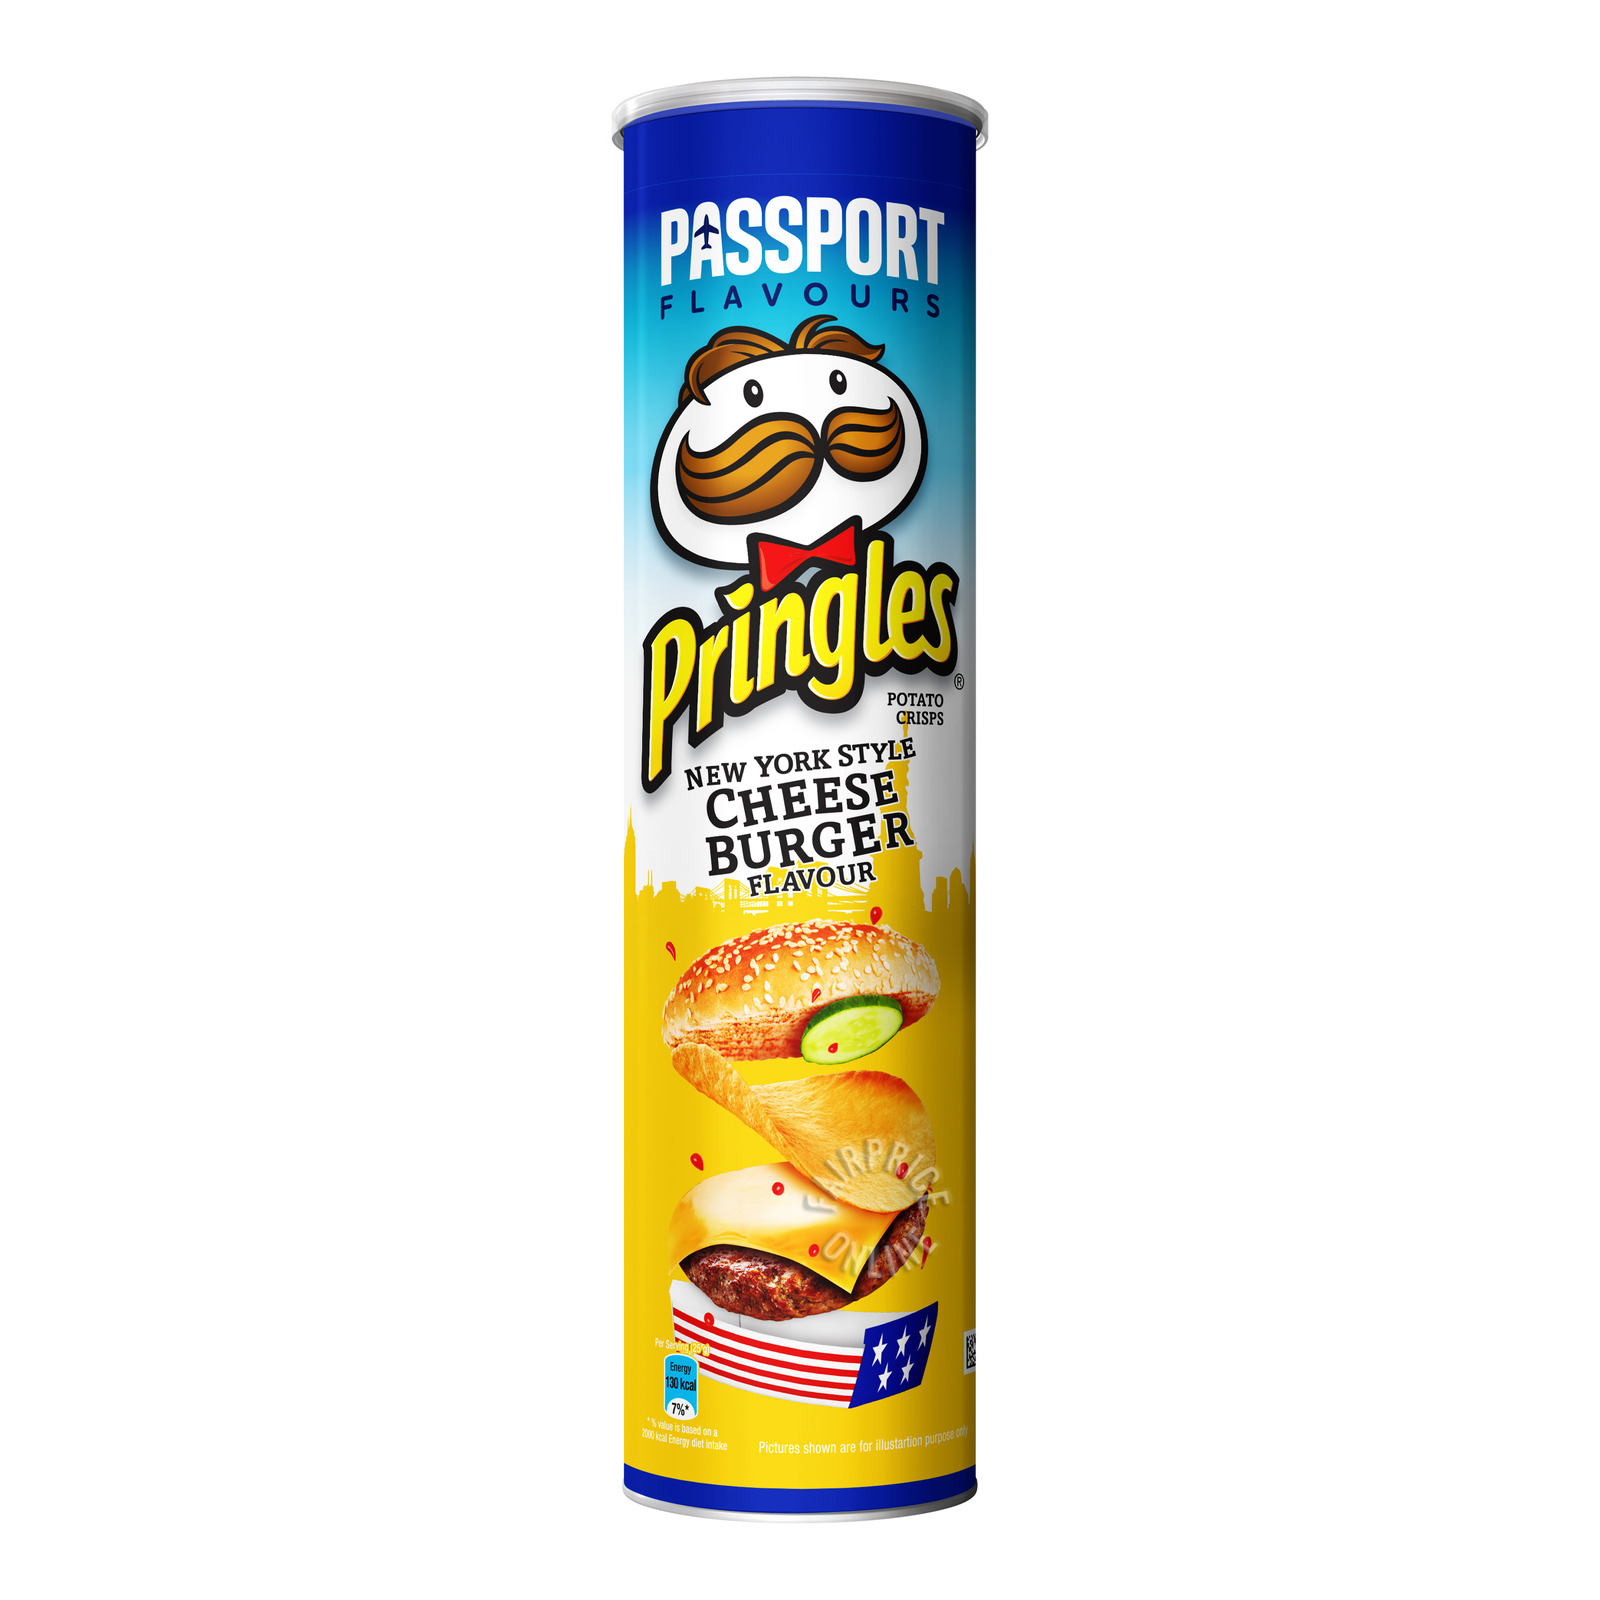 Pringles Potato Chips - New York Style Cheese Burger